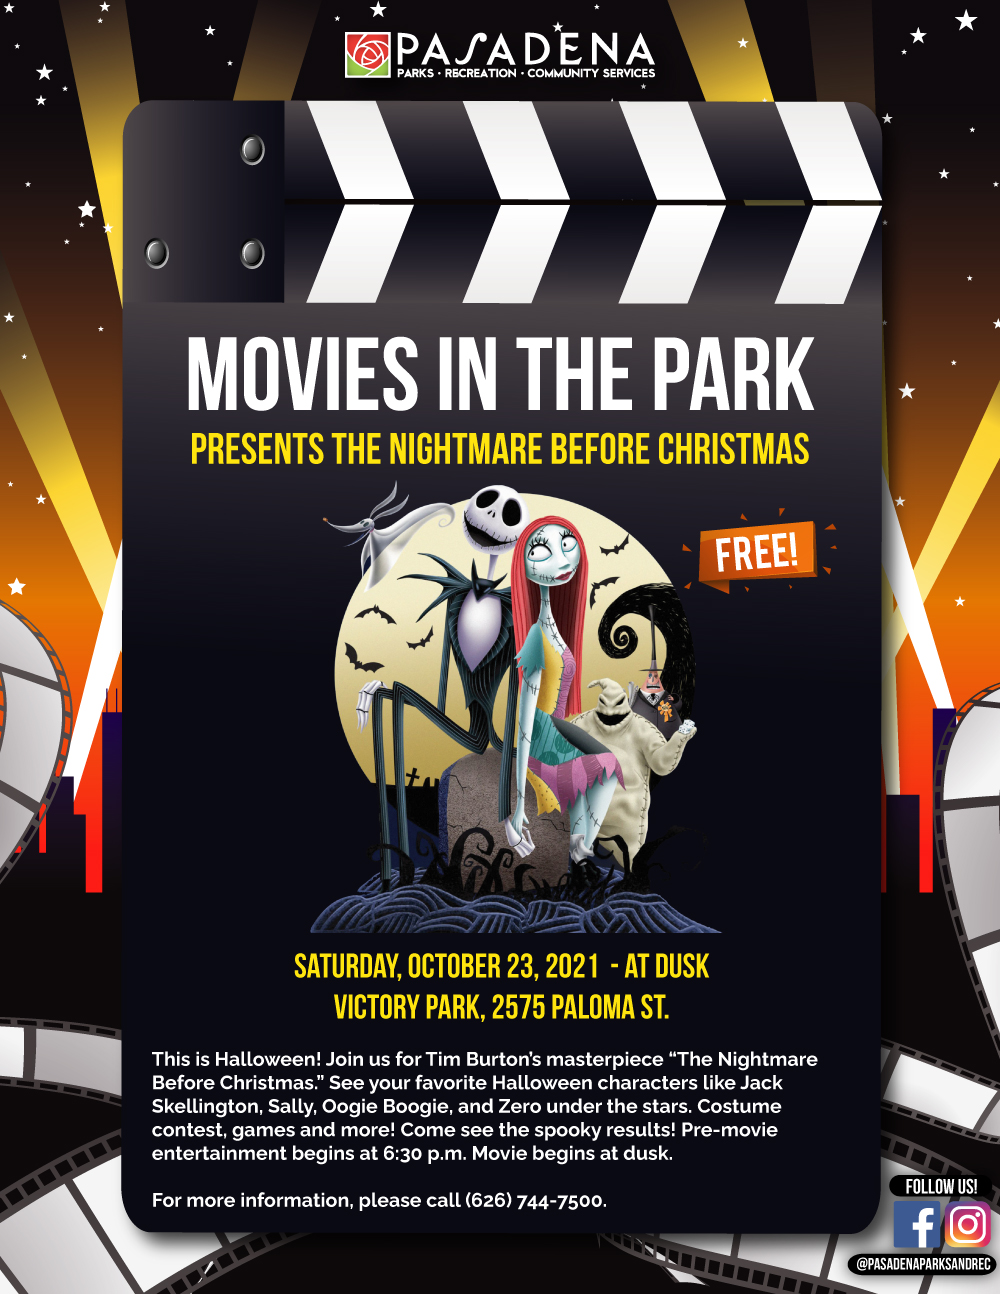 """Movies in the Park presents the nightmare before christmas saturday, october 23, 2021 - at dusk Victory Park, 2575 Paloma St. This is Halloween! Join us for Tim Burton's masterpiece """"The Nightmare Before Christmas."""" See your favorite Halloween characters like Jack Skellington, Sally, Oogie Boogie, and Zero under the stars. Costume contest, games and more! Come see the spooky results! Pre-movie entertainment begins at 6:30 p.m. Movie begins at dusk. For more information, please call (626) 744-7500."""